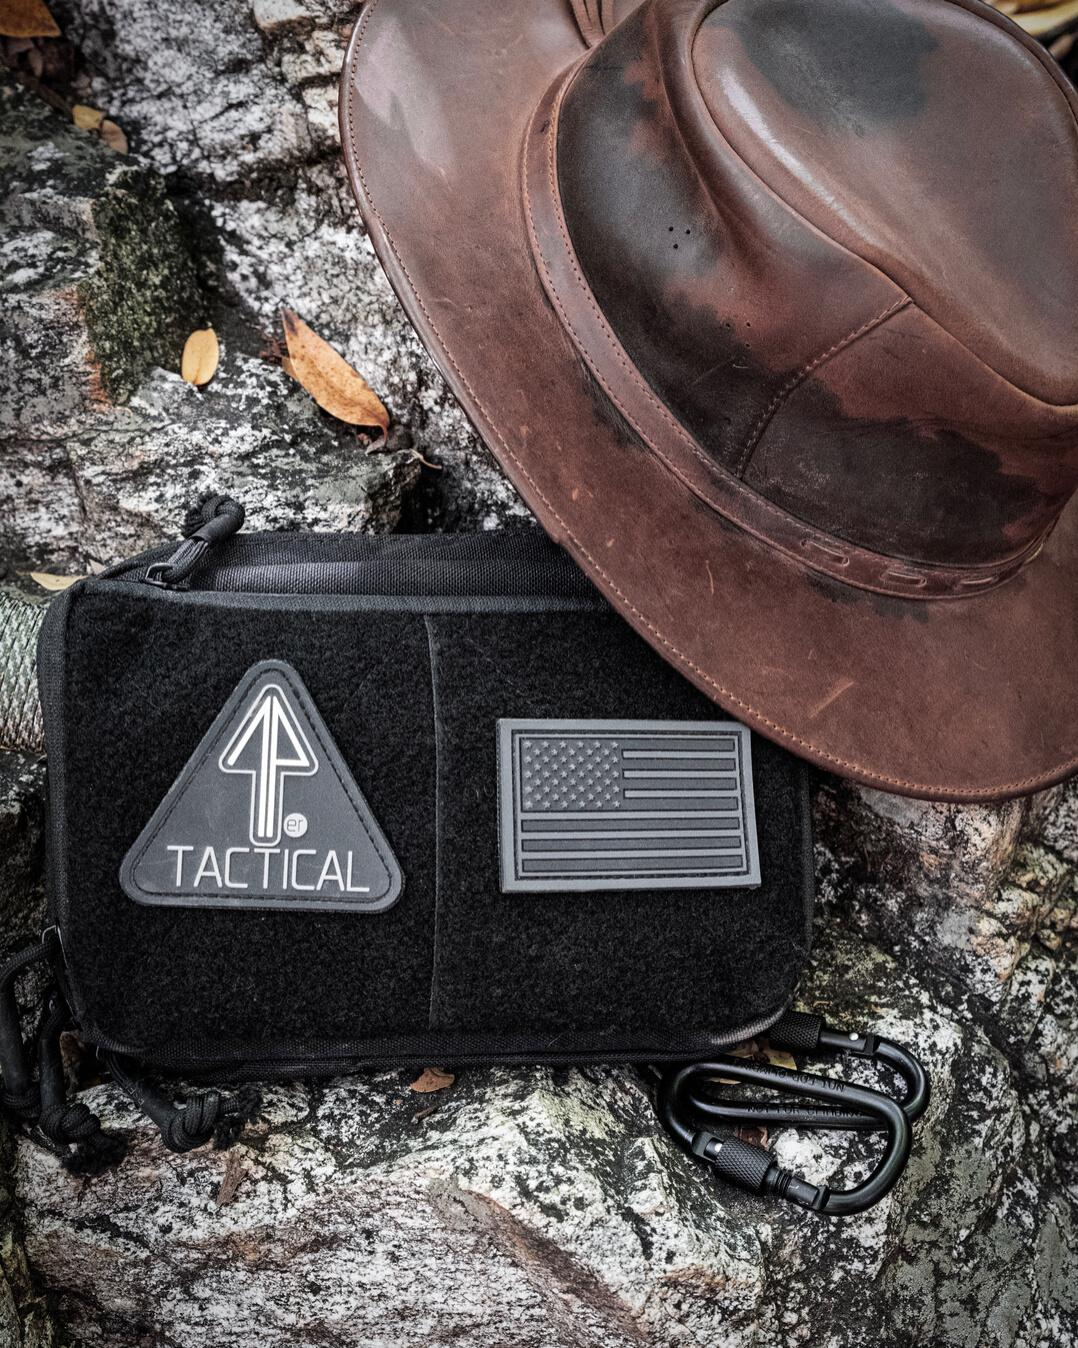 14er Tactical Admin Pouch used for everyday carry, posed with a ranger's hat.